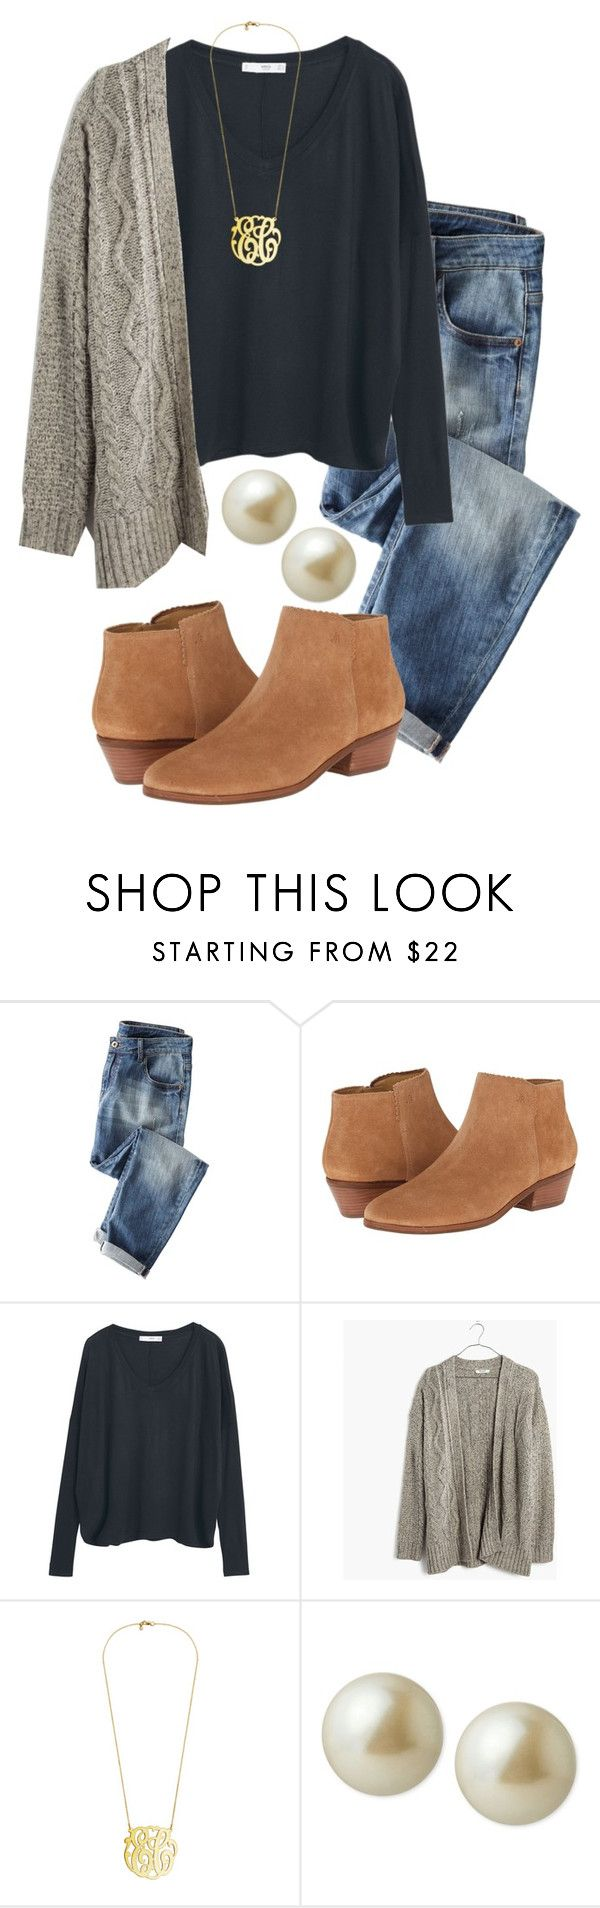 """Bad ootd look a like // in a rush"" by madelyn-abigail ❤ liked on Polyvore featuring Wrap, Jack Rogers, MANGO, Madewell and Carolee"